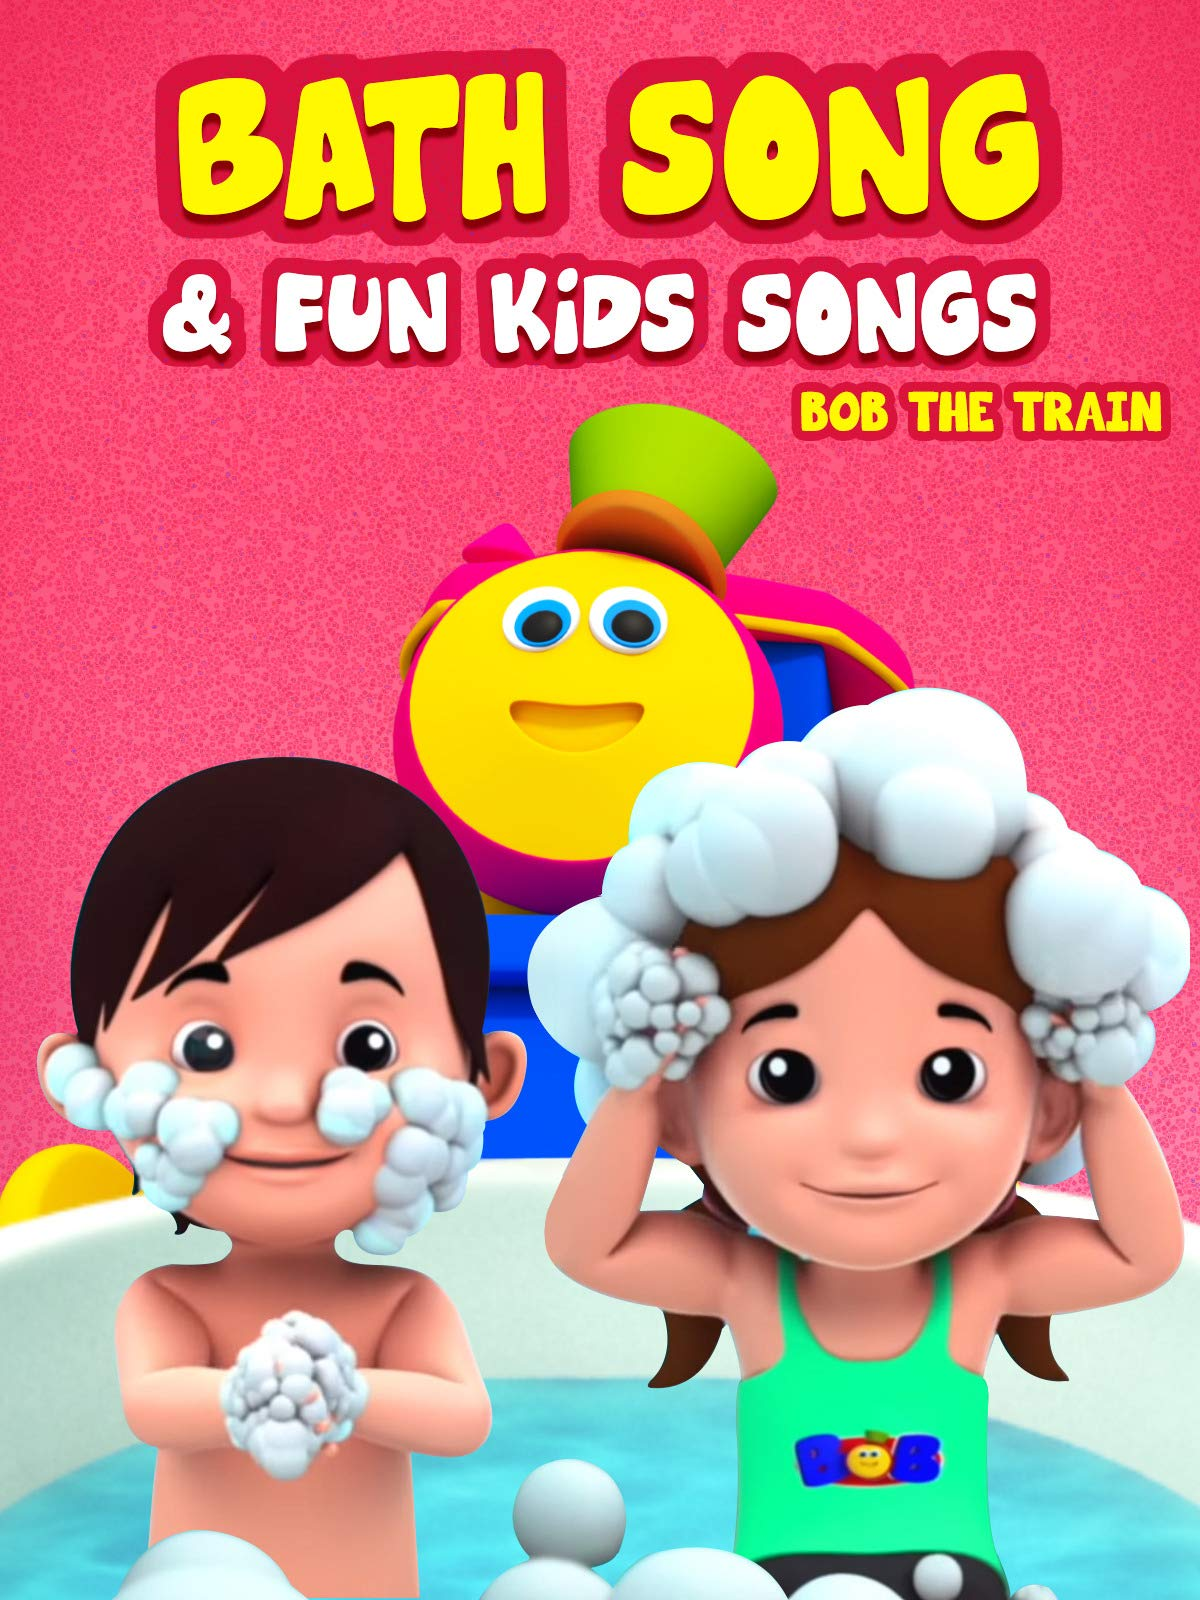 Bath Song & Fun Kid Songs - Bob The Train on Amazon Prime Video UK